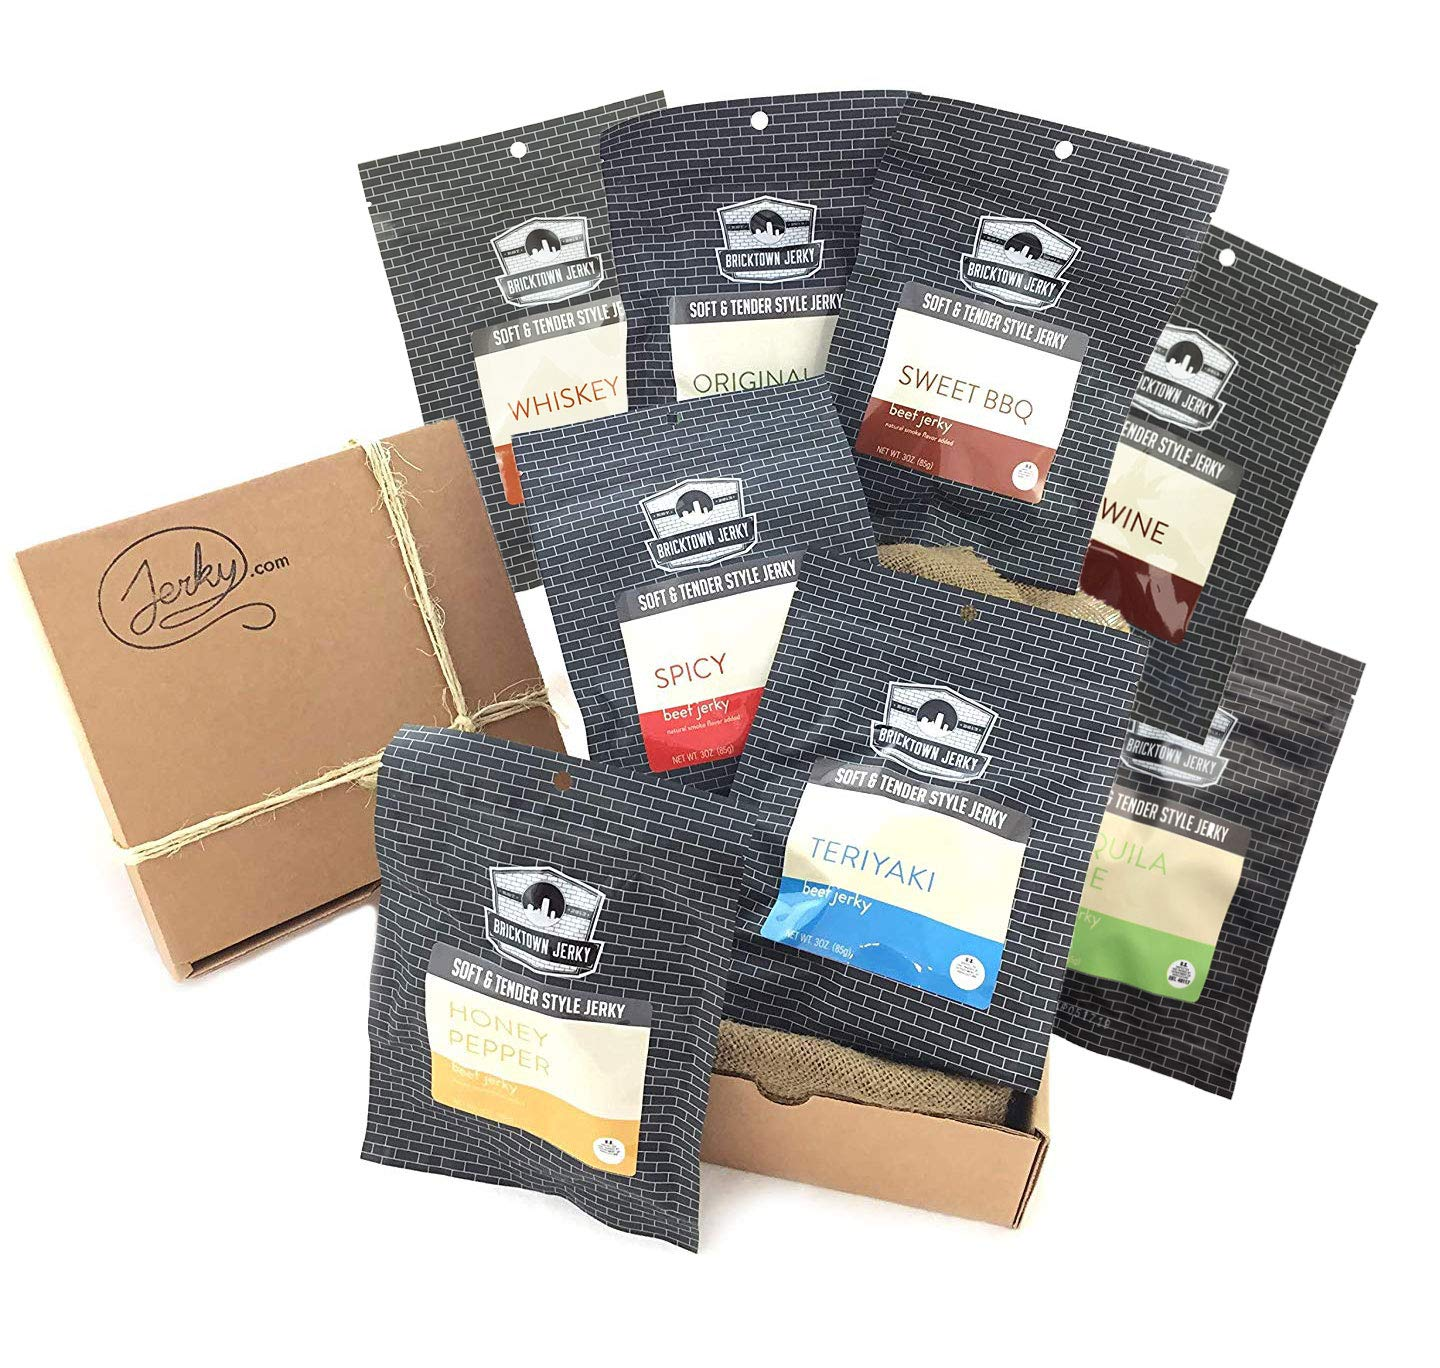 Bricktown Jerky Complete Beef Jerky Sampler Gift Basket - 8 flavors - Great Gift Idea for any Man!